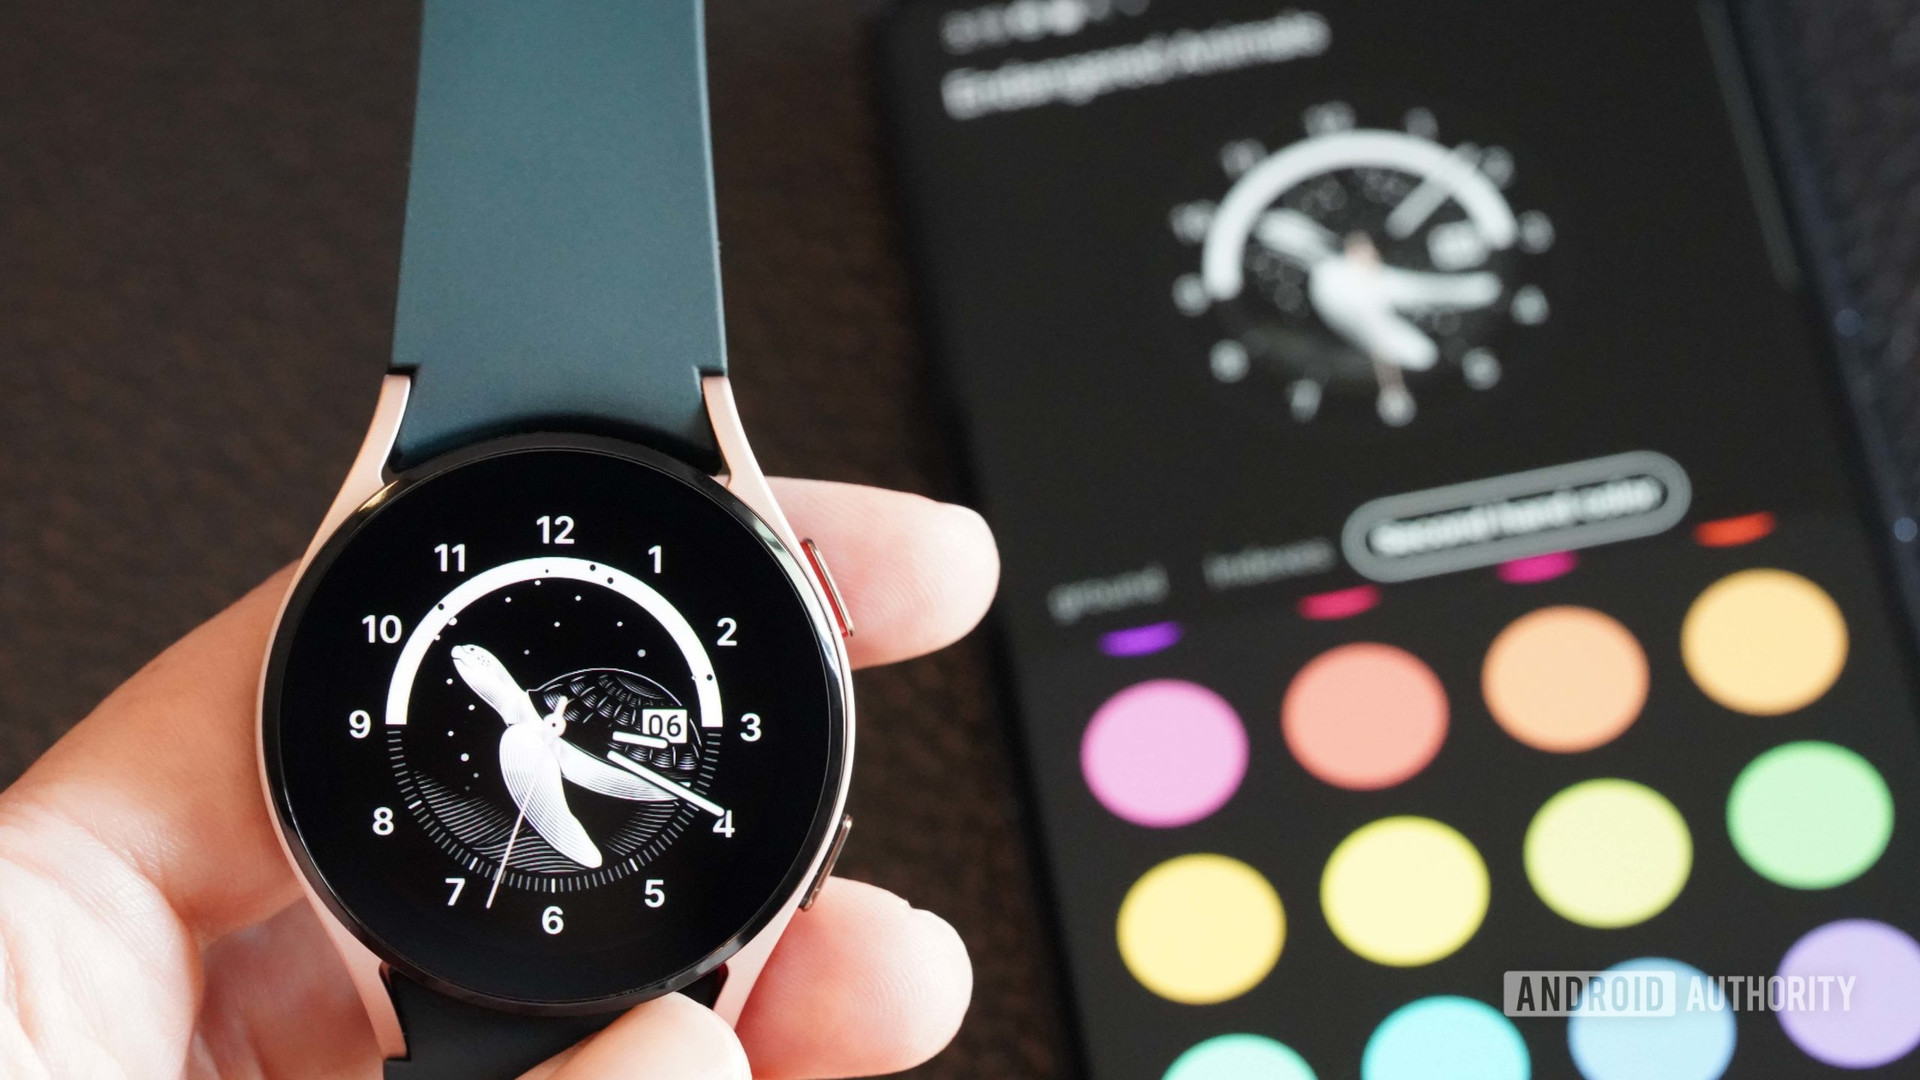 User sets custom colors to the Galaxy Watch 4 endangered animals watch face.